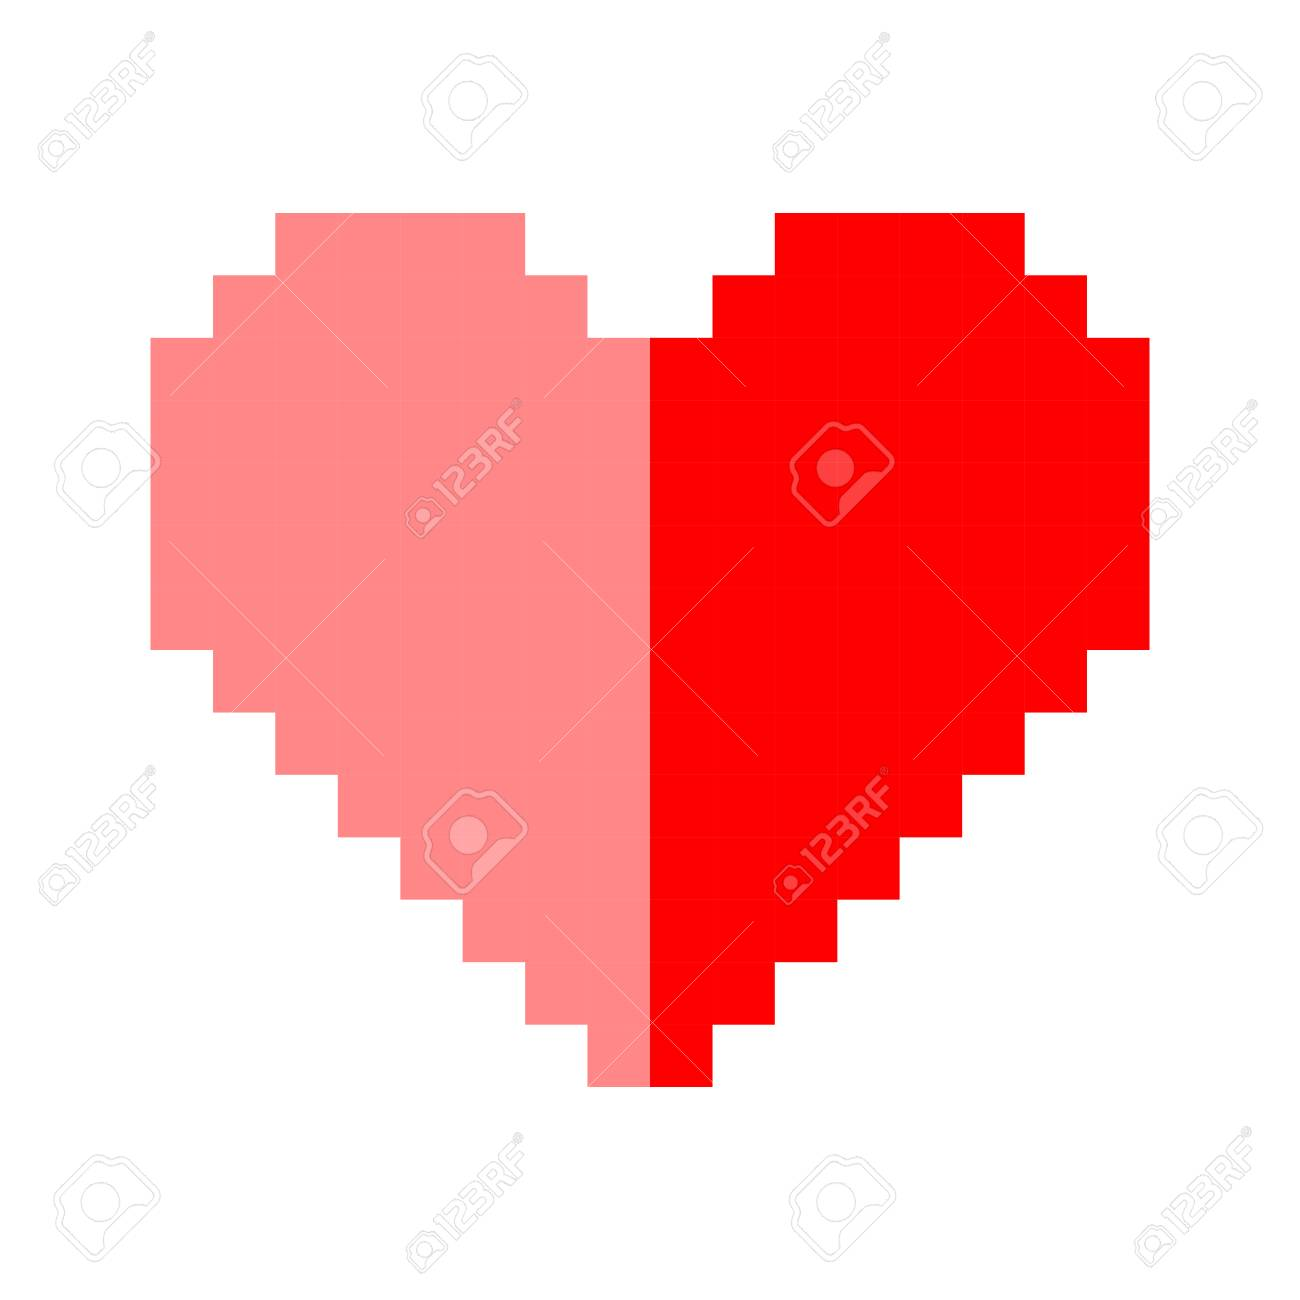 Pixel Art Heart Love Color Icon Valentine Set Stock Photo Picture And Royalty Free Image Image 83768147